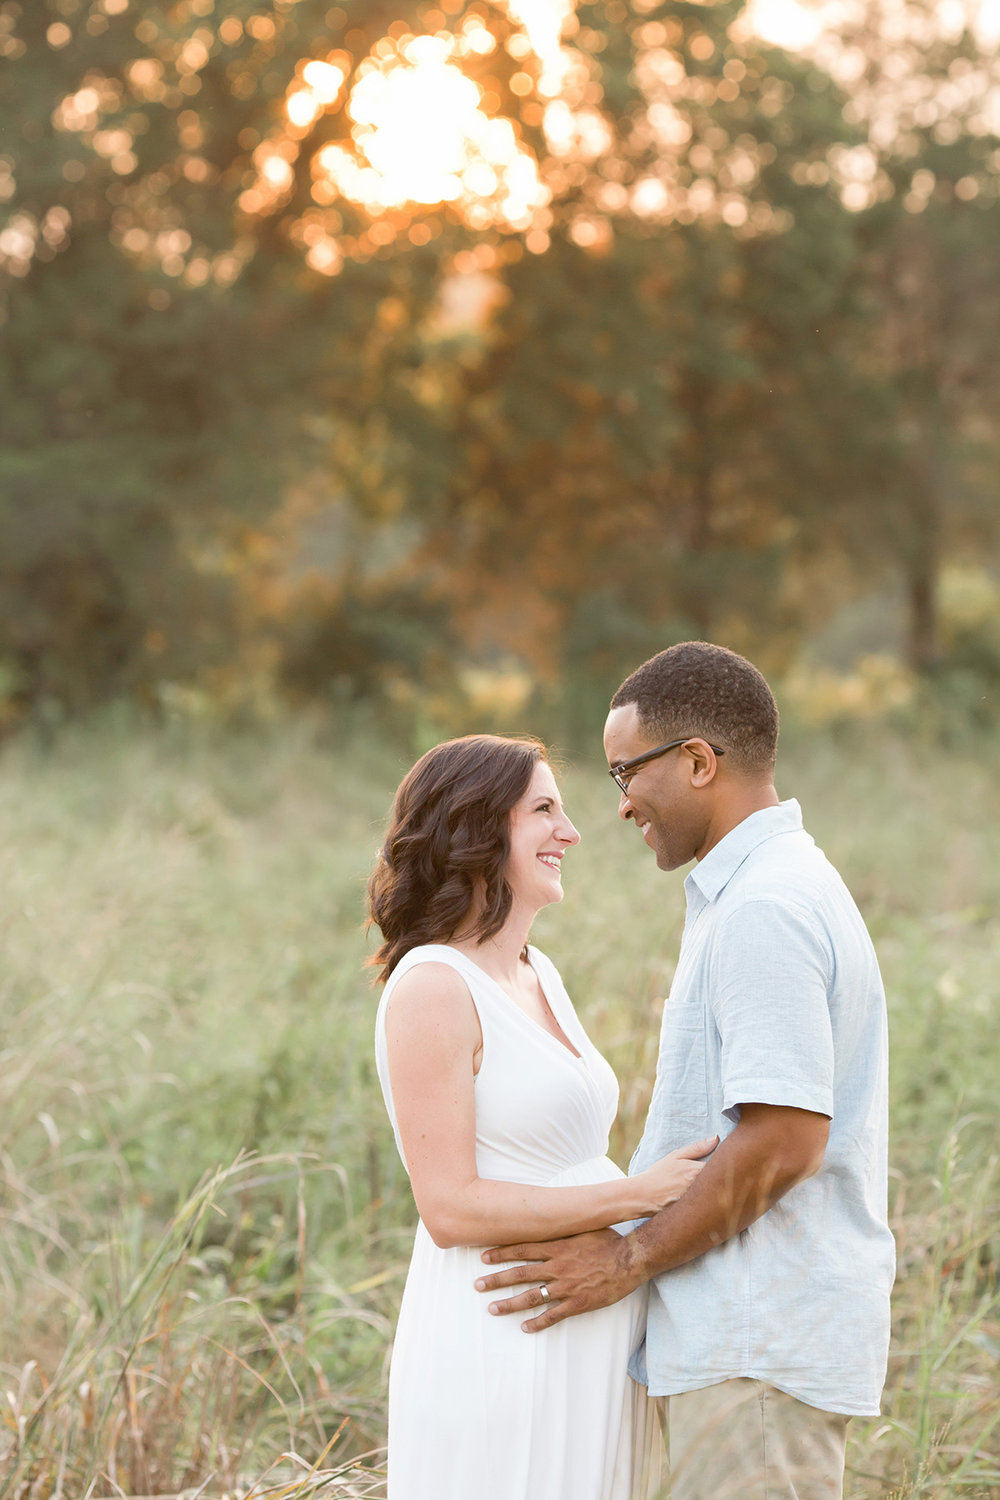 Louisville KY Newborn Photographer | Julie Brock Photography | Top Maternty Photographer Kentucky | Outdoor Photo shoot at Sunset of expectant mom.jpg